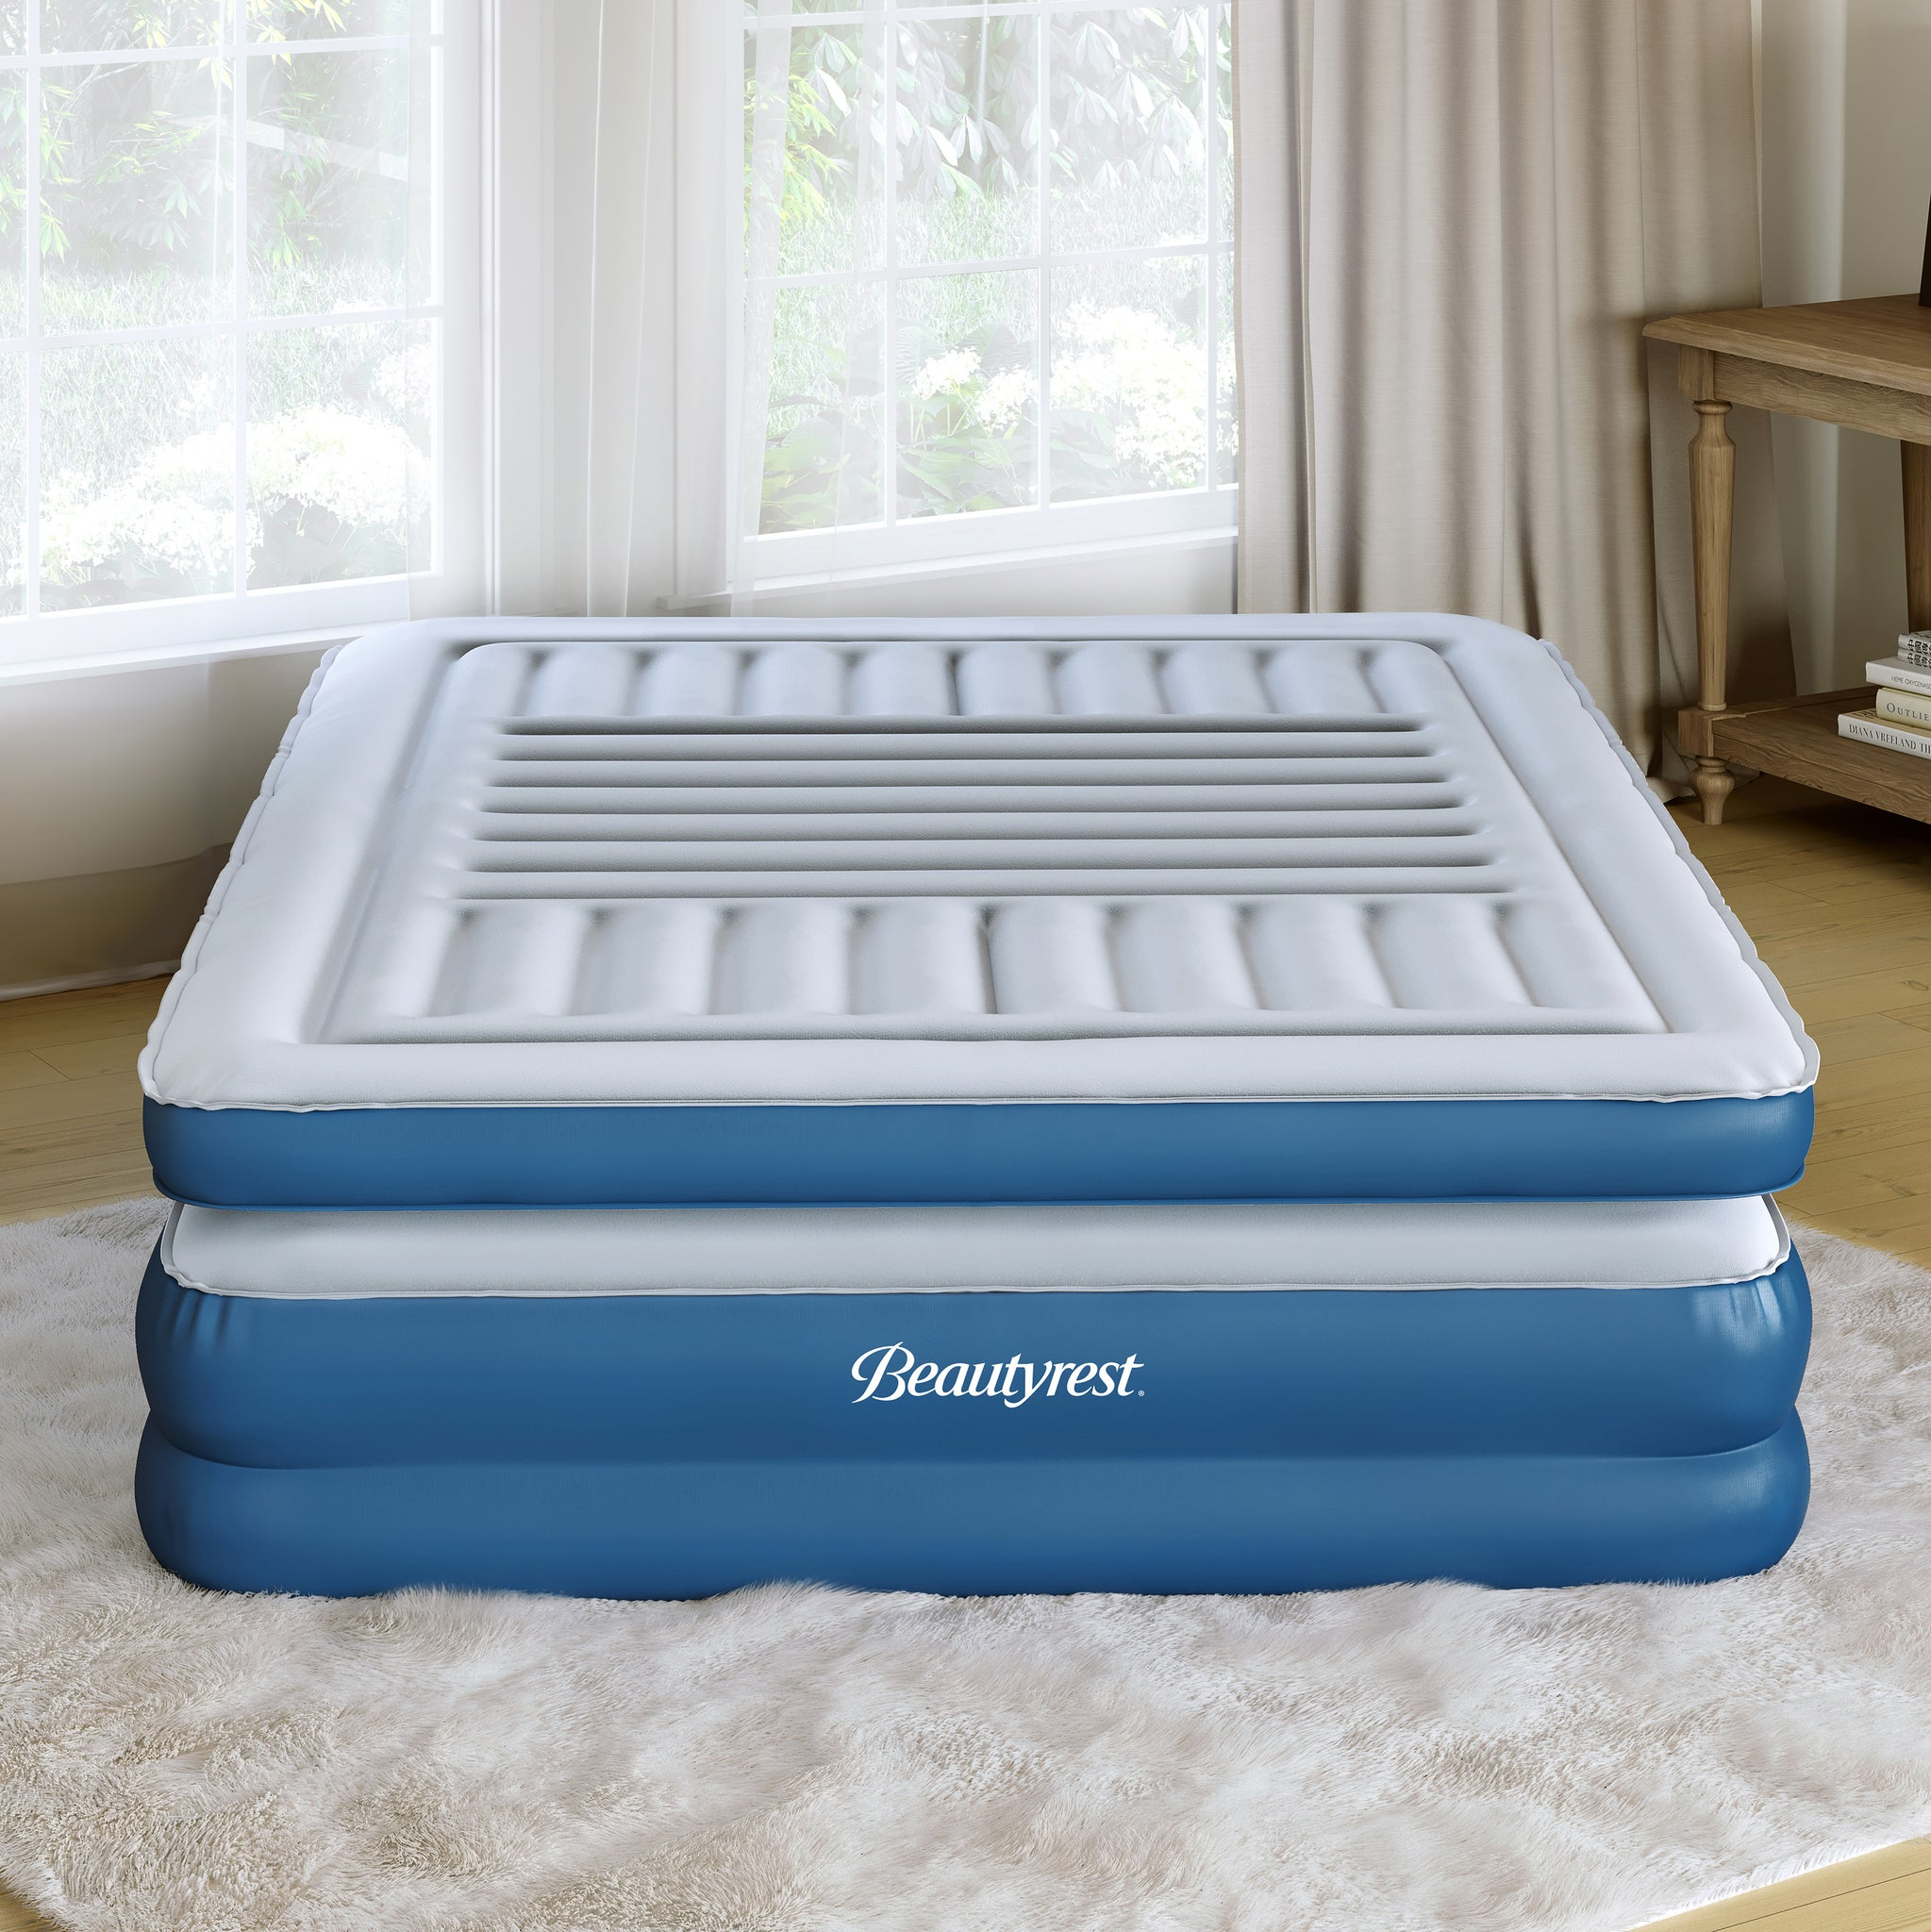 "Beautyrest LuxAire 20"" Tri-Zone Euro Top Air Mattress Express Bed - King"